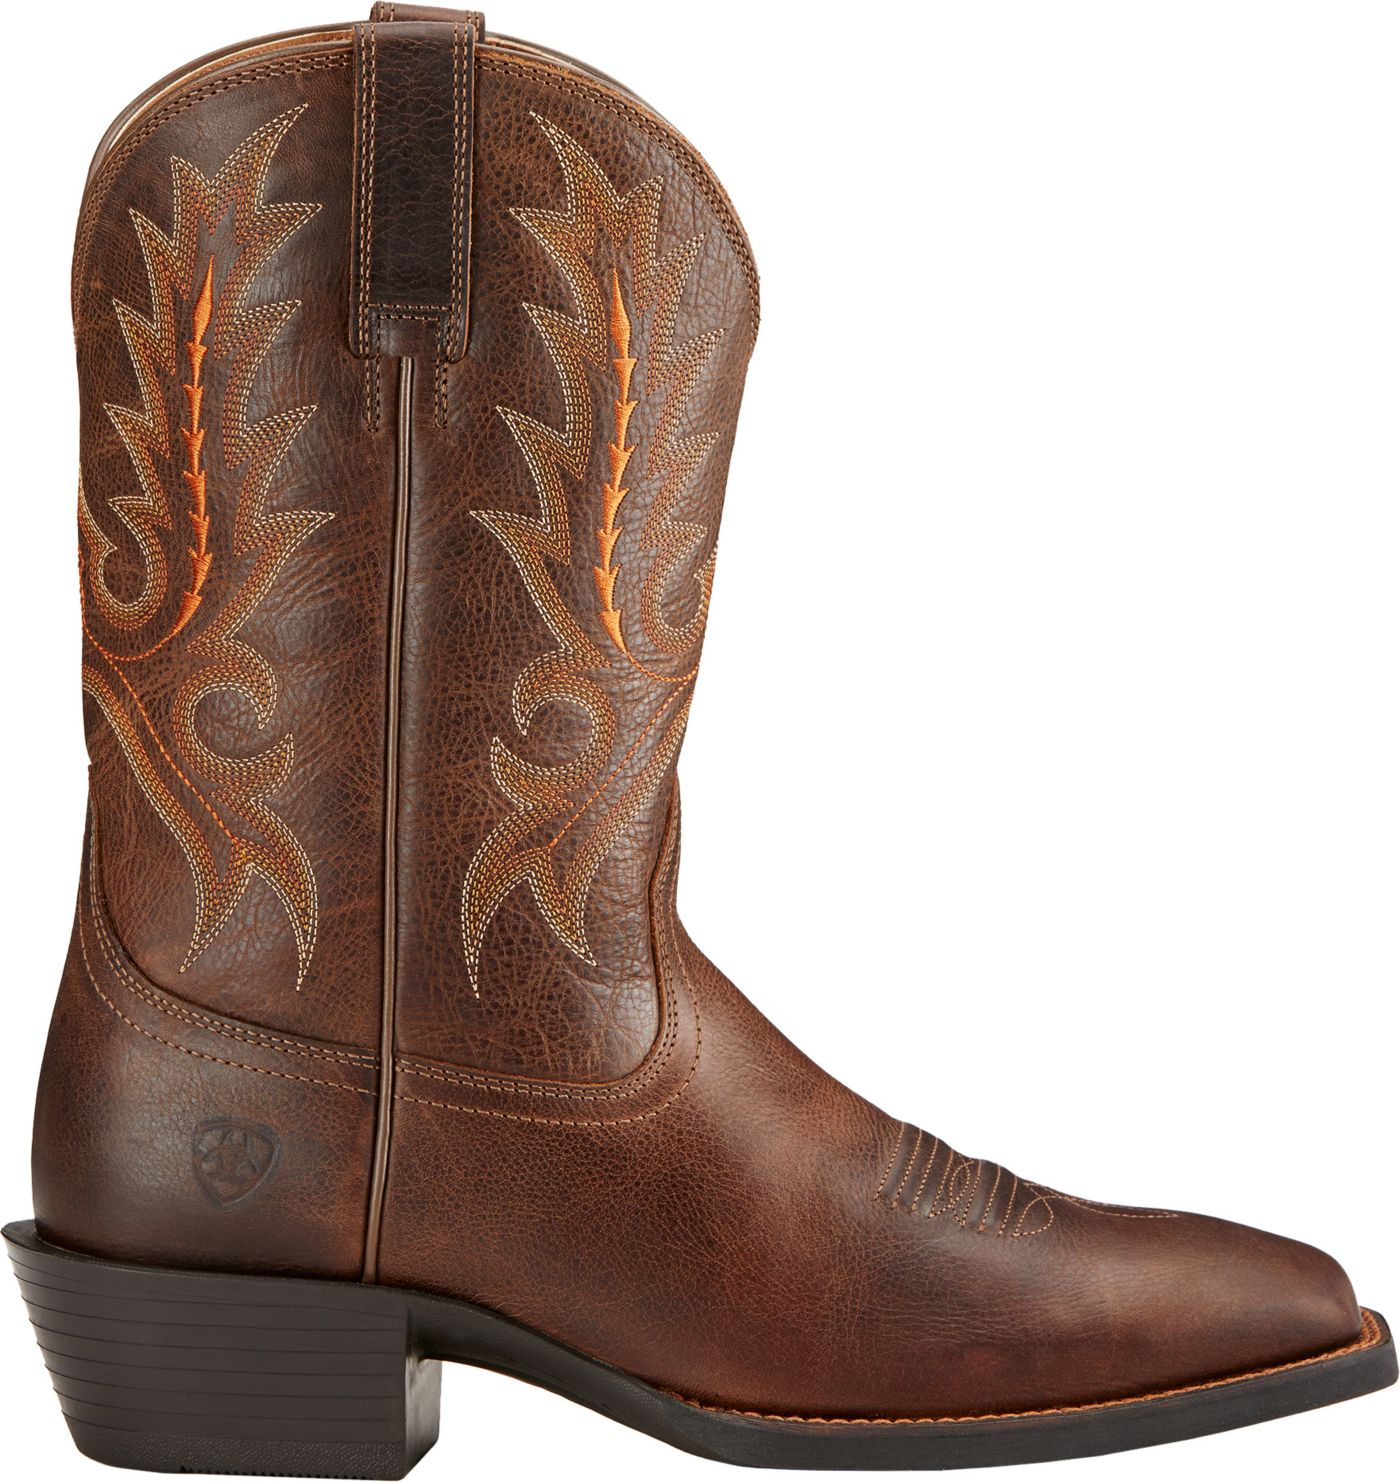 Ariat Men's Sport Outfitter Western Boots